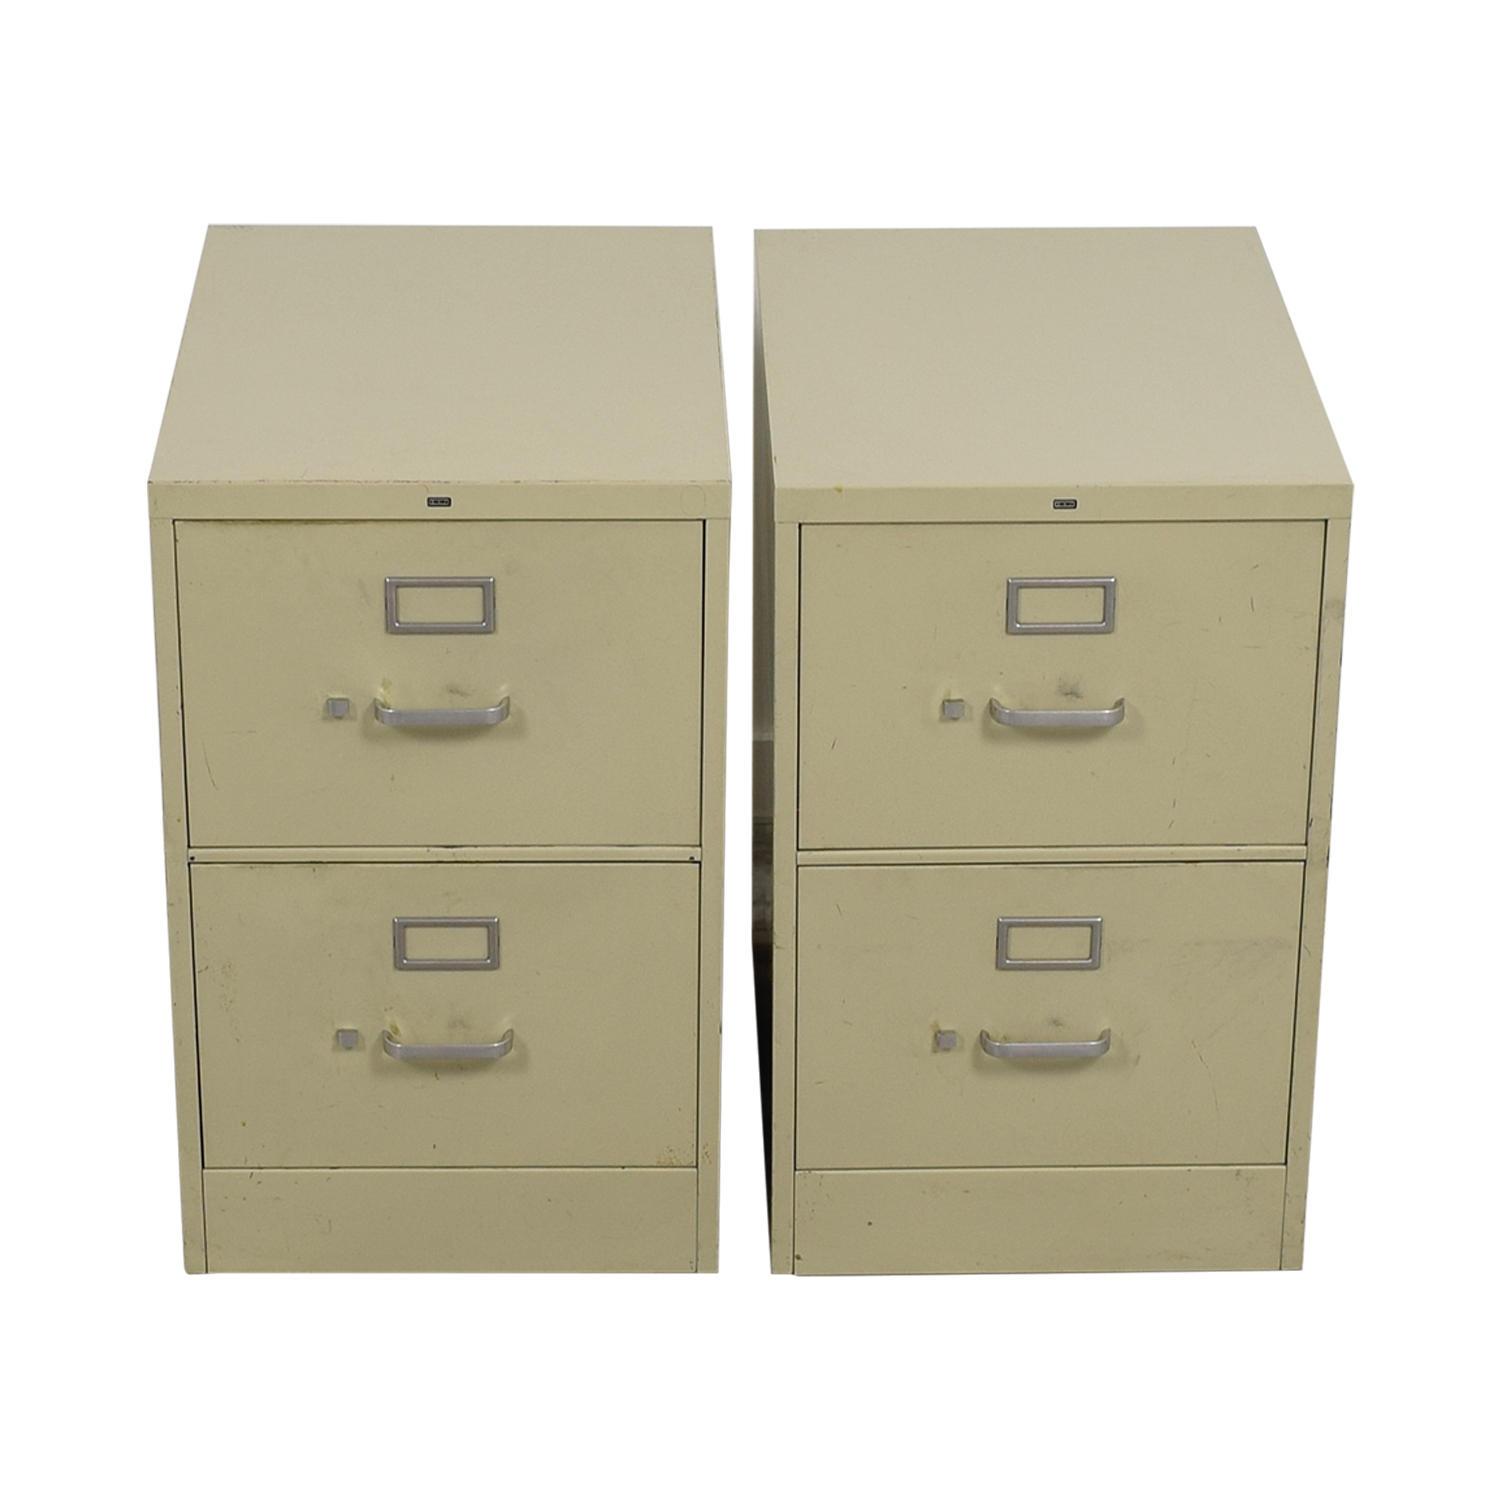 Two-Drawer Grey Metal File Cabinets second hand